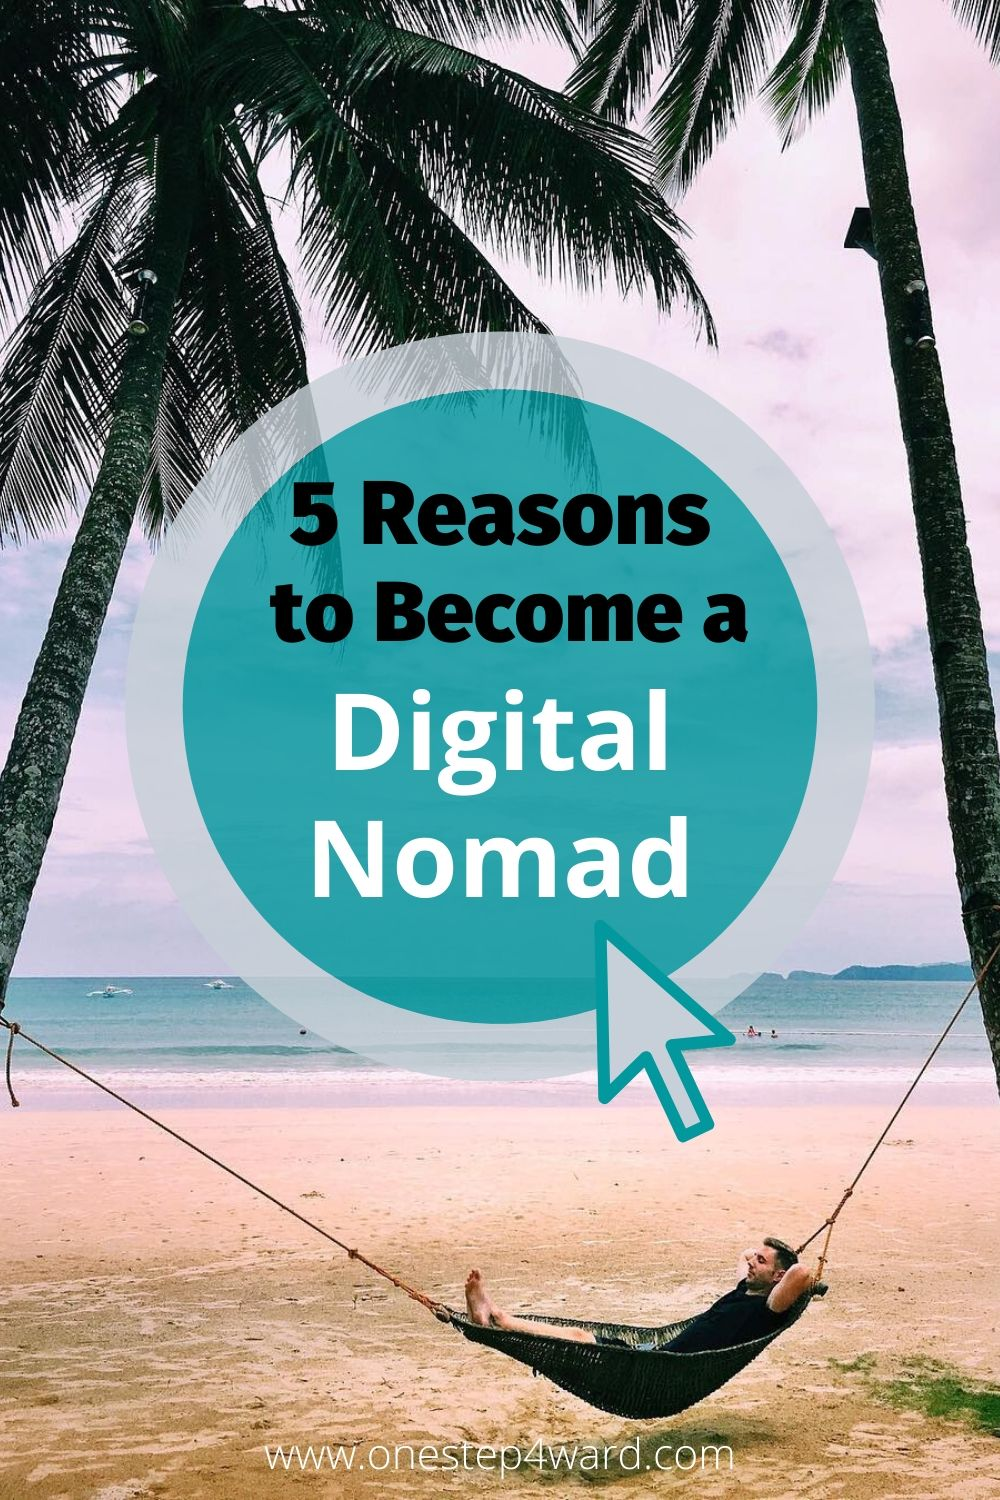 Becoming a Digital Nomad